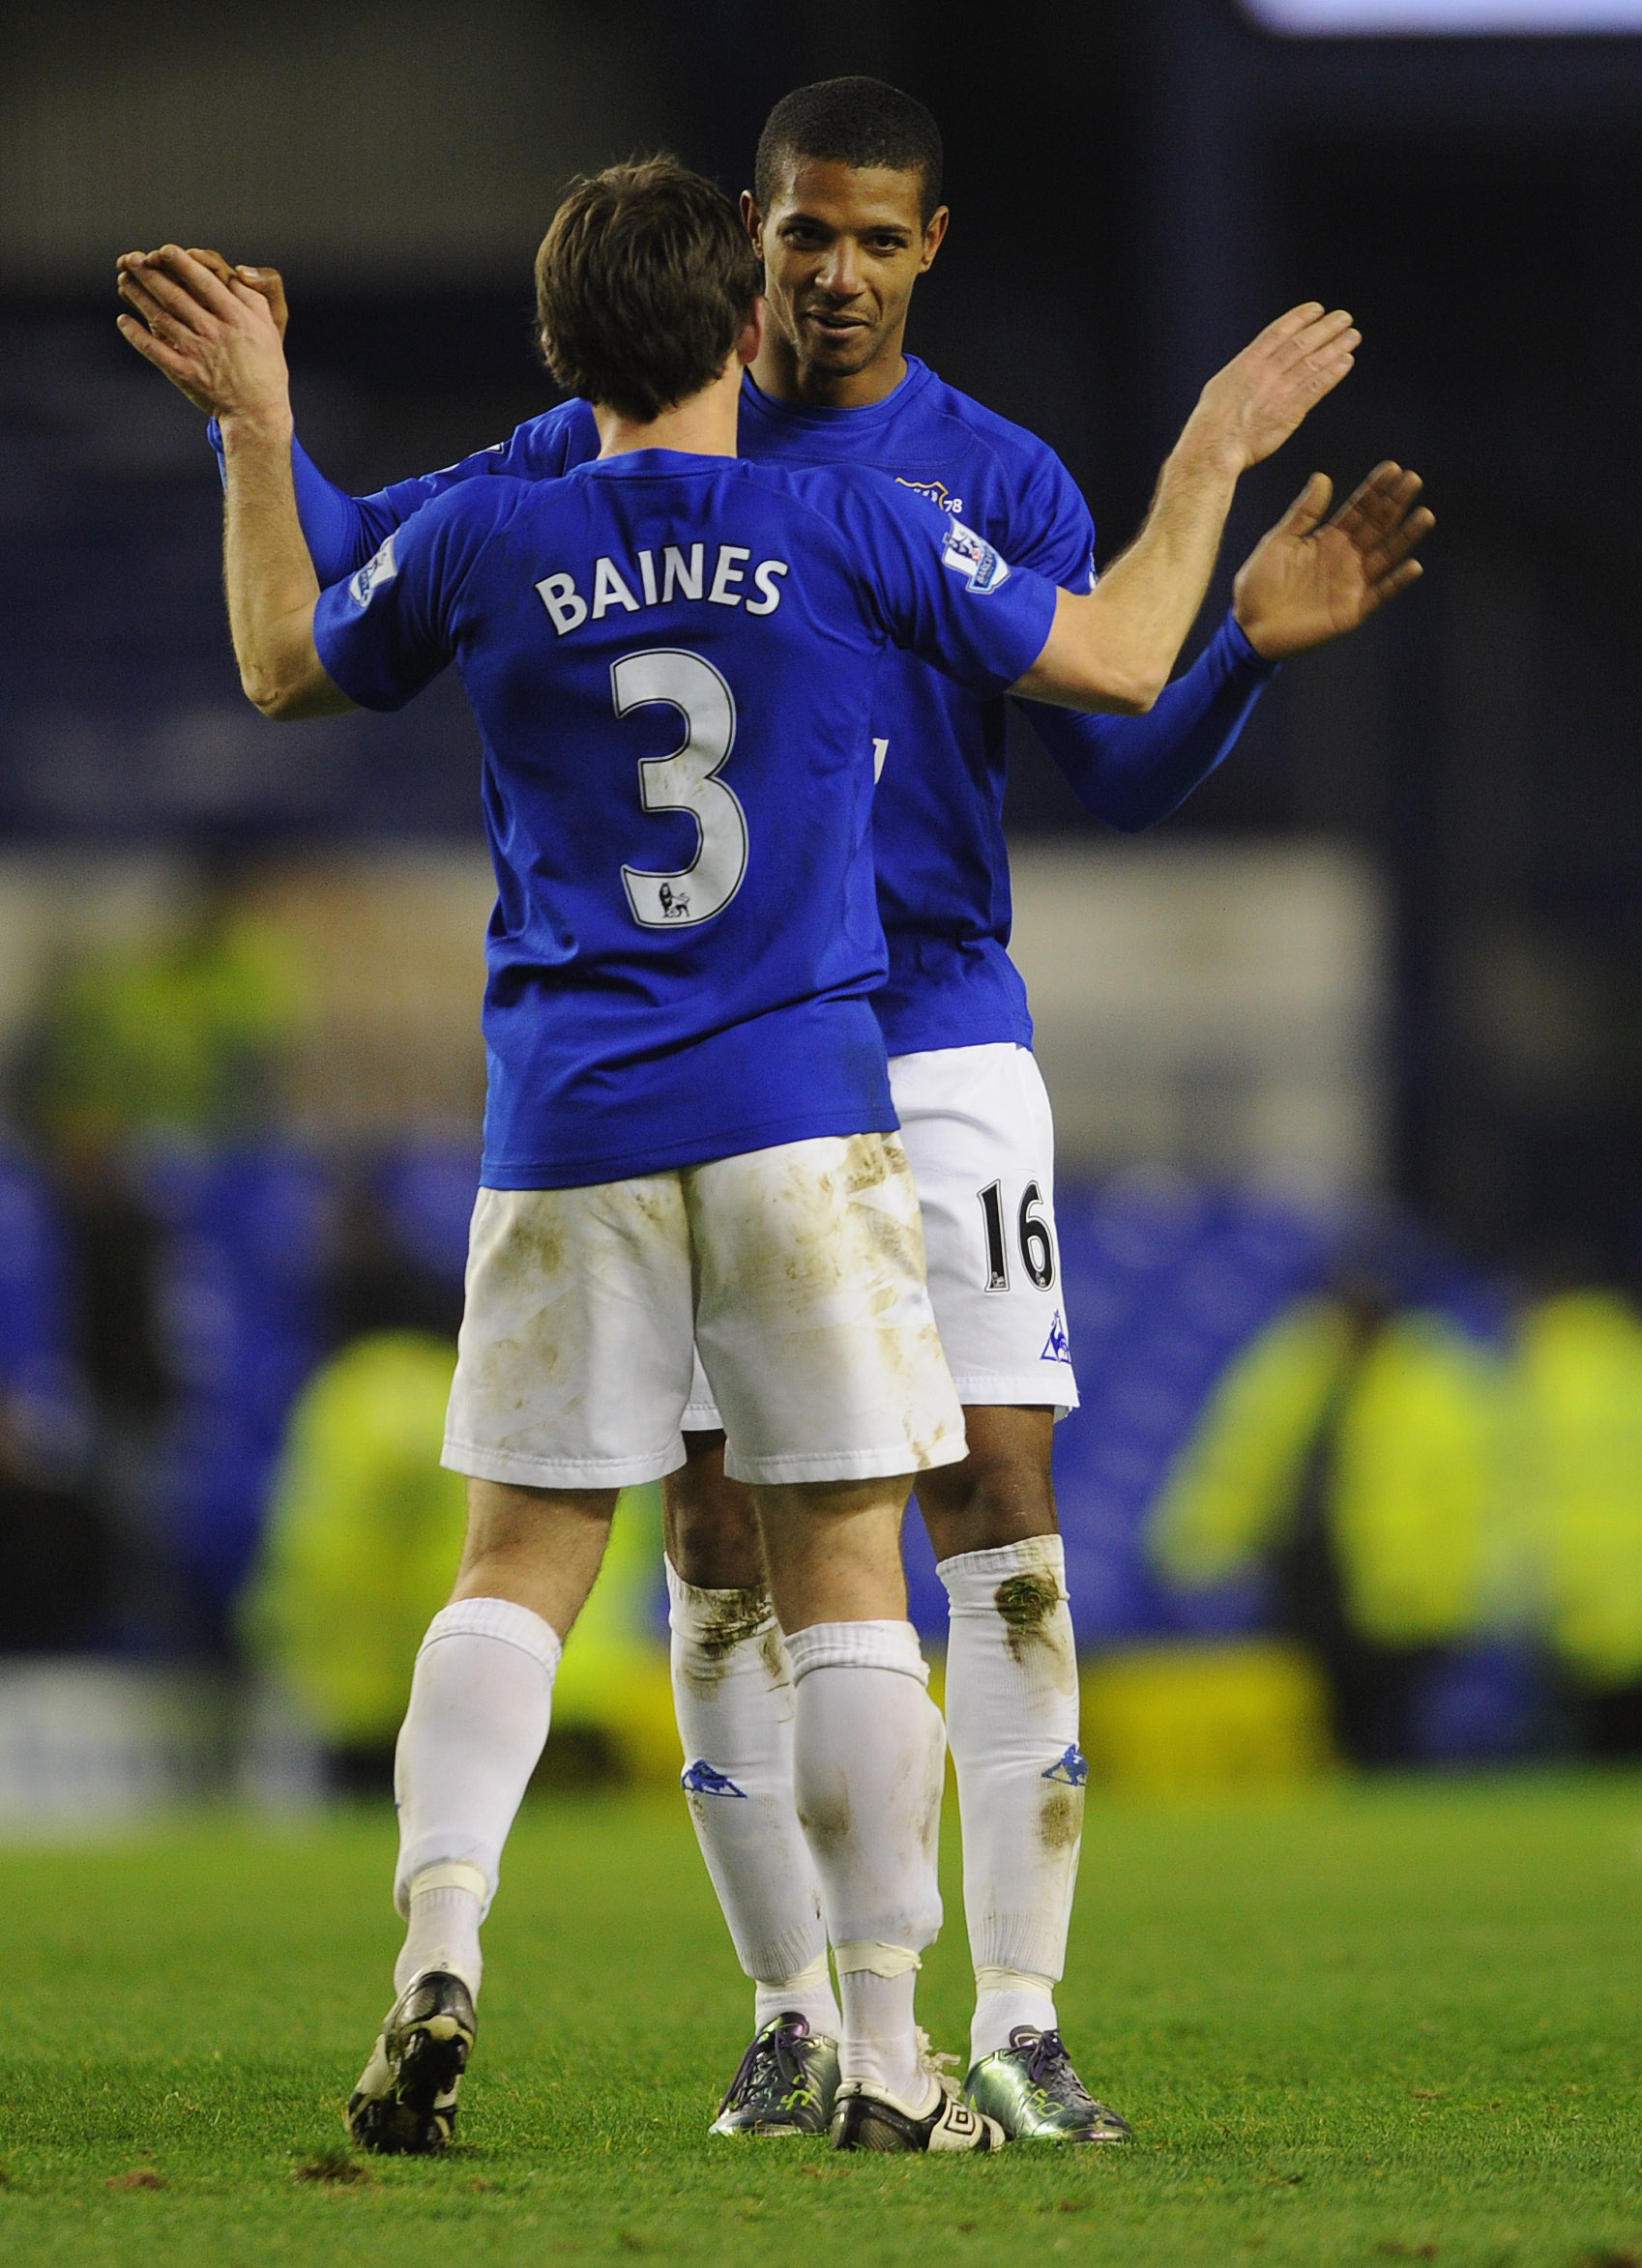 LIVERPOOL, ENGLAND - NOVEMBER 10: Jermaine Beckford of Everton is congratulated by Leighton Baines after the Barclays Premier League match between Everton and Bolton Wanderers at Goodison Park on November 10, 2010 in Liverpool, England.  (Photo by Michael